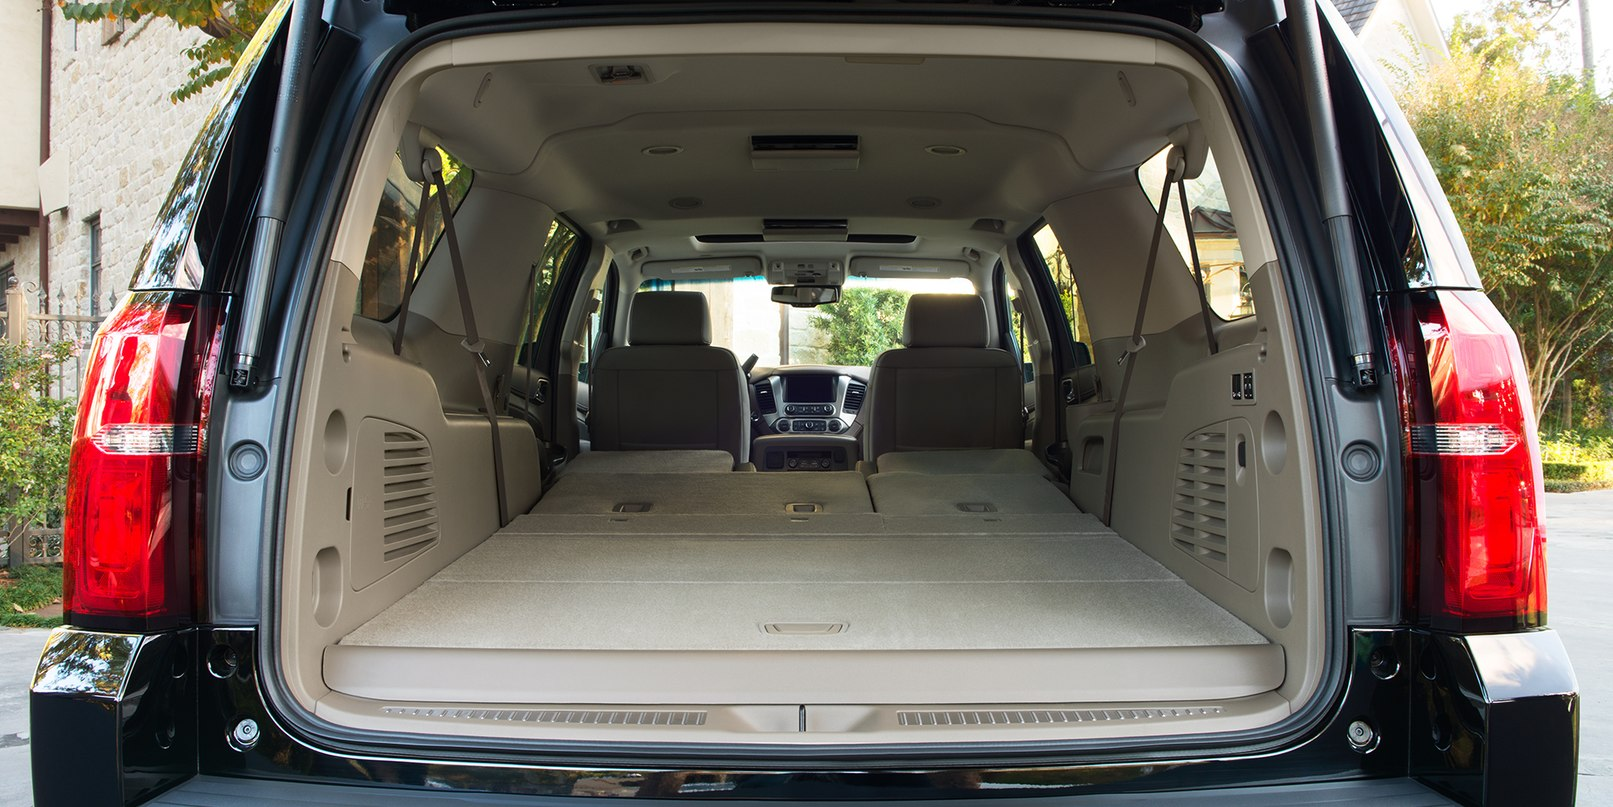 Spacious Cabin of the Chevrolet Suburban